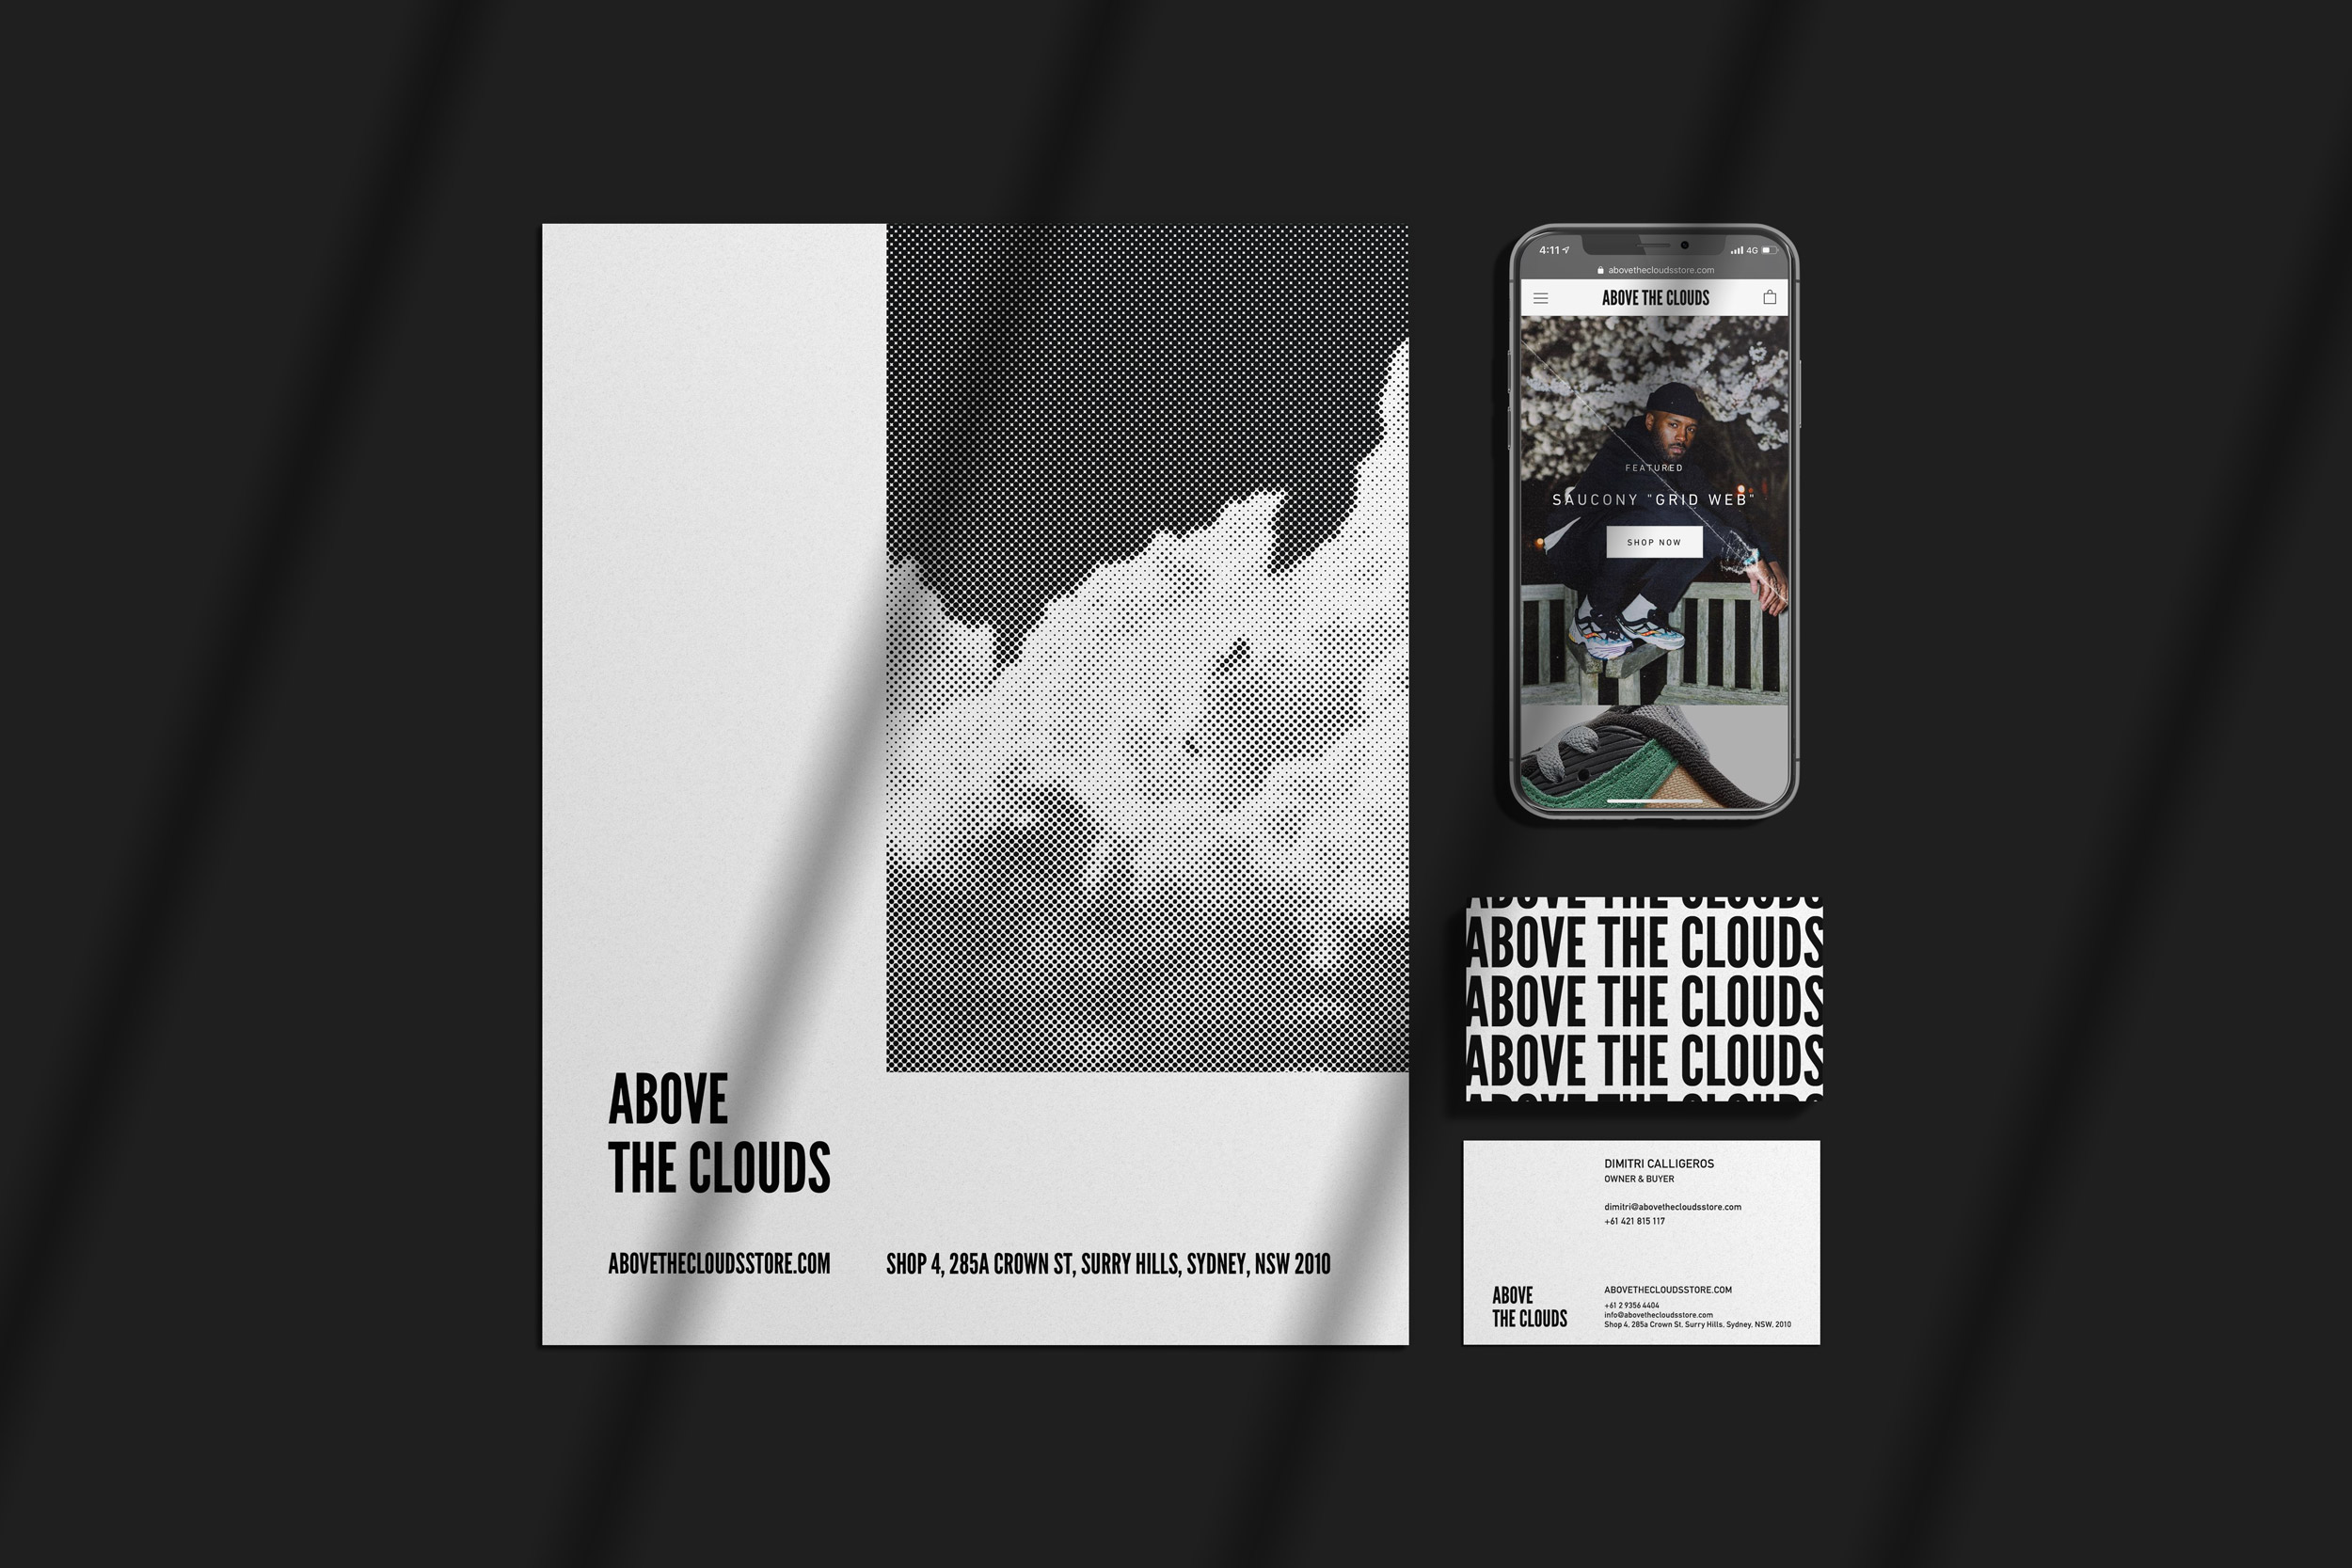 Nectar-&-Co-Above-The-Clouds-Branding-Mockup-All.jpg